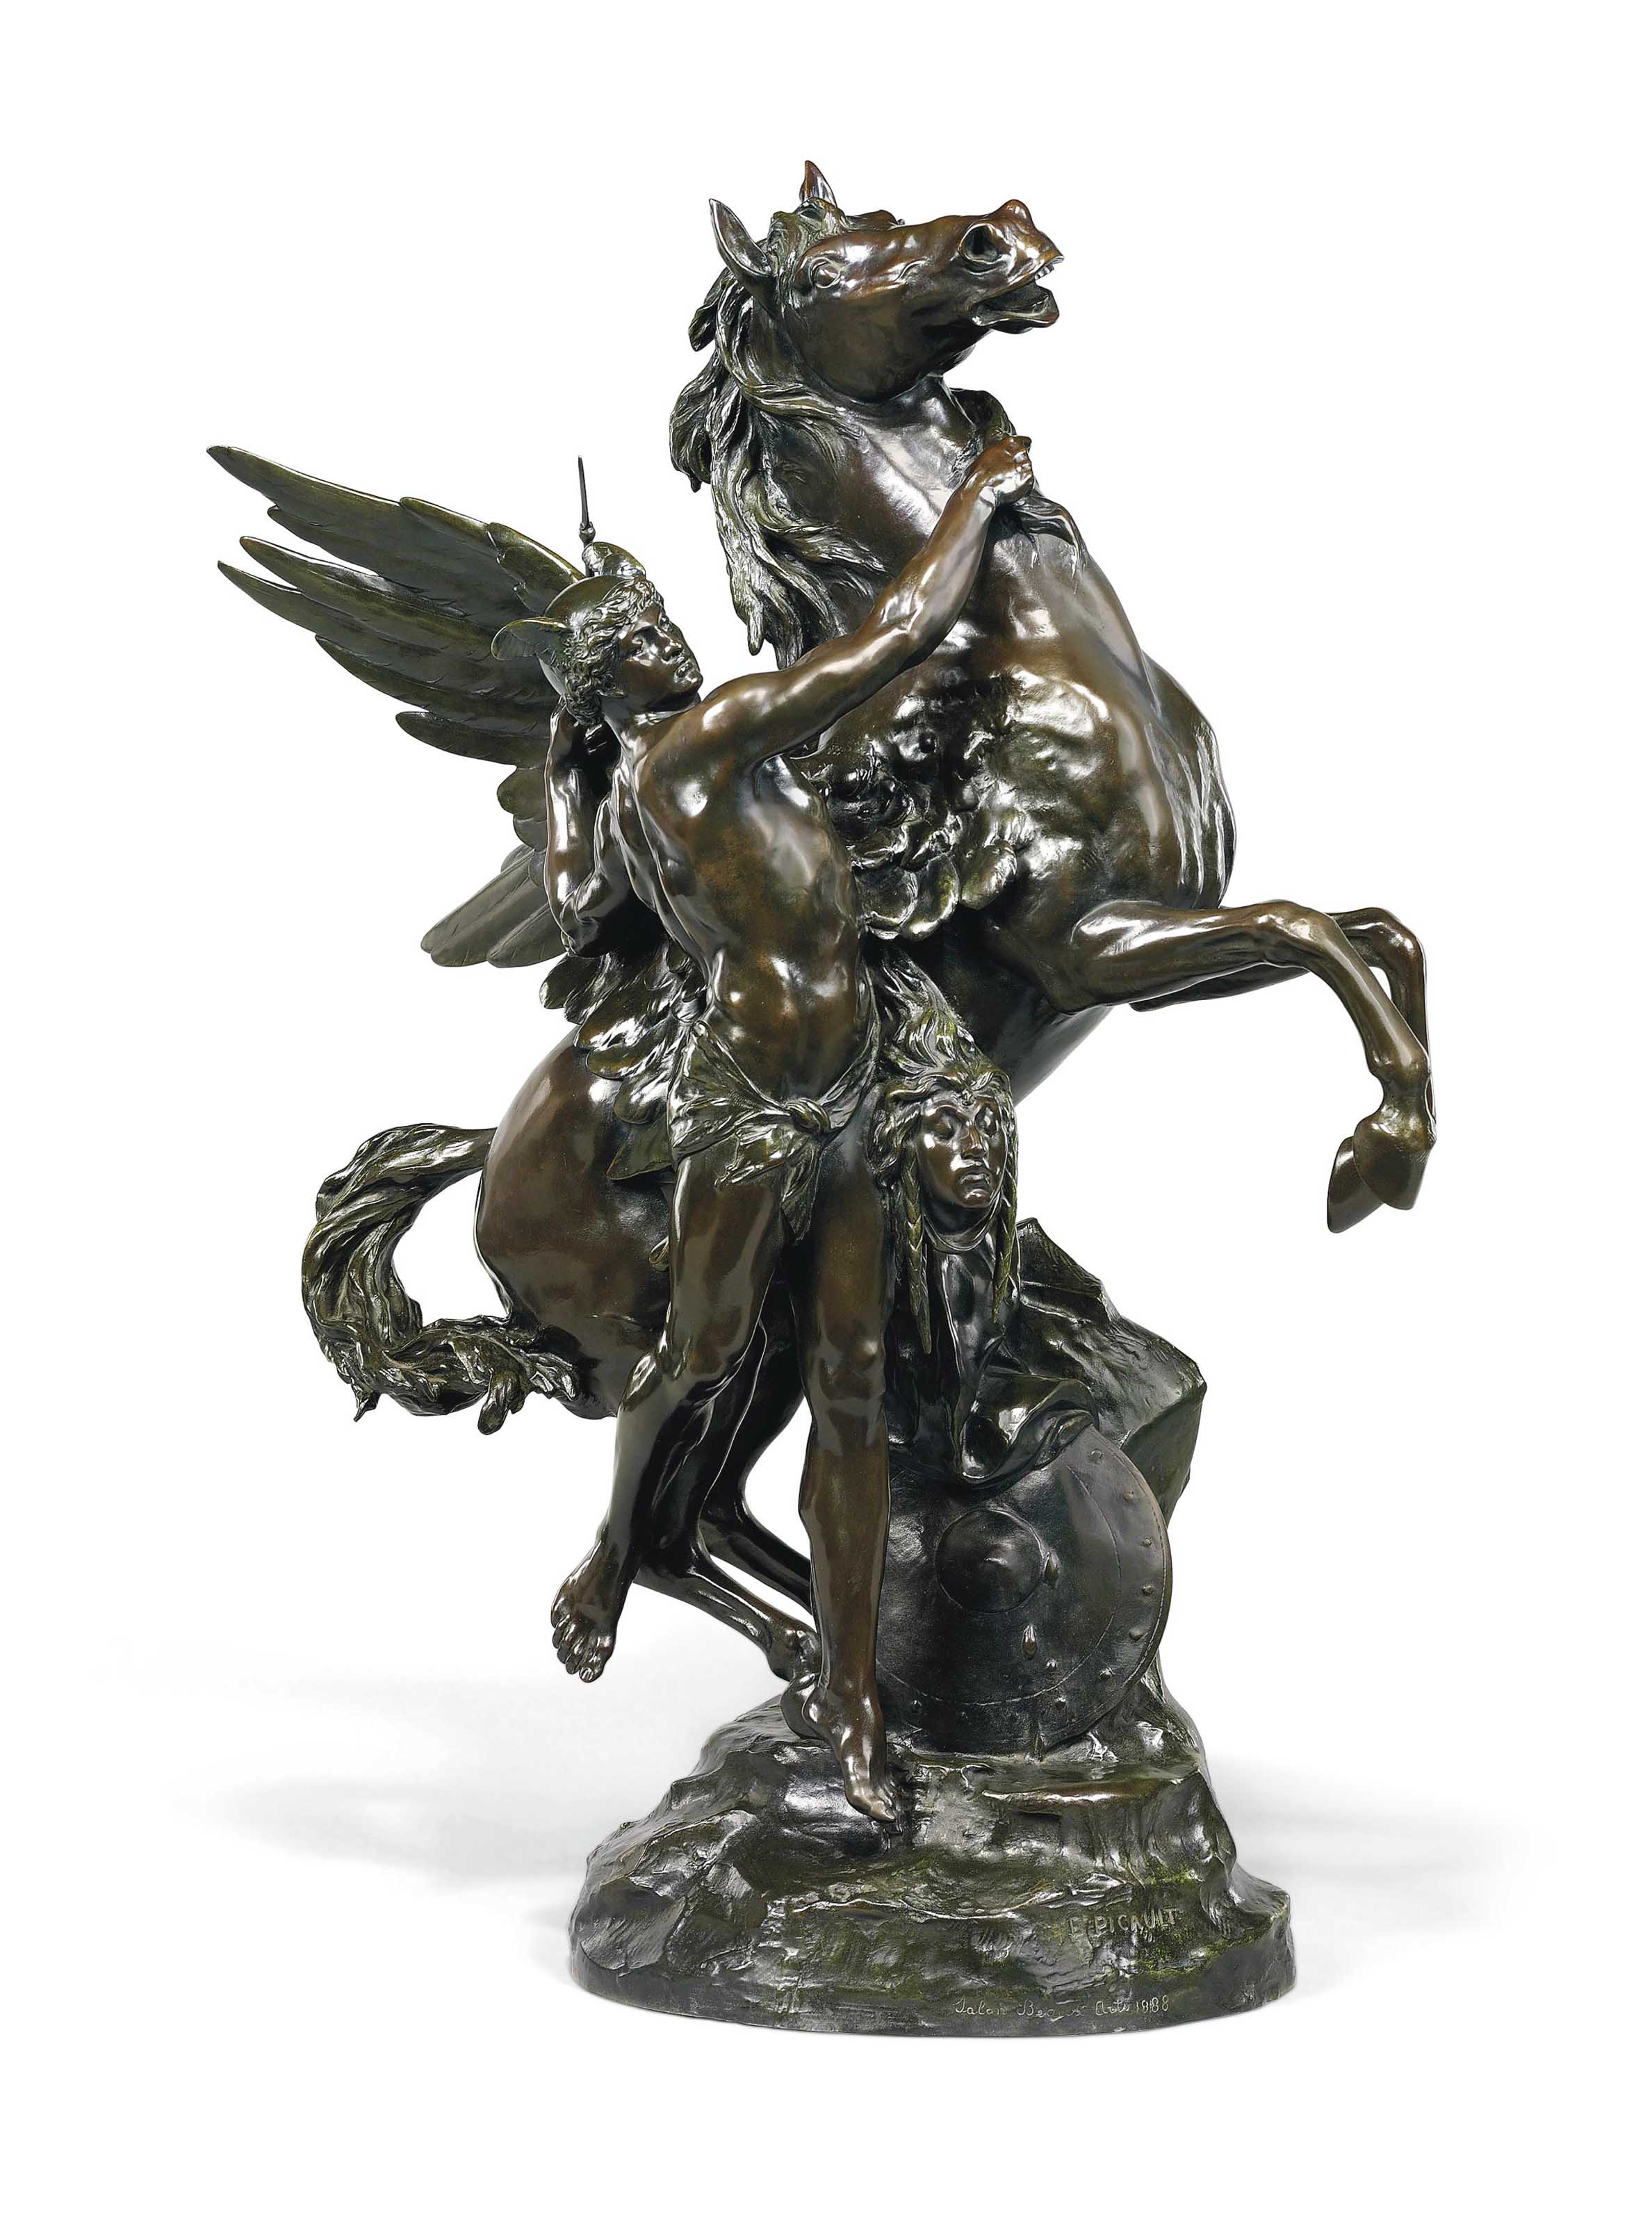 Persée et Pégase avec la tete de Meduse (Perseus and Pegasus with the head of Medusa) or La naissance de Pégase (The birth of Pegasus)